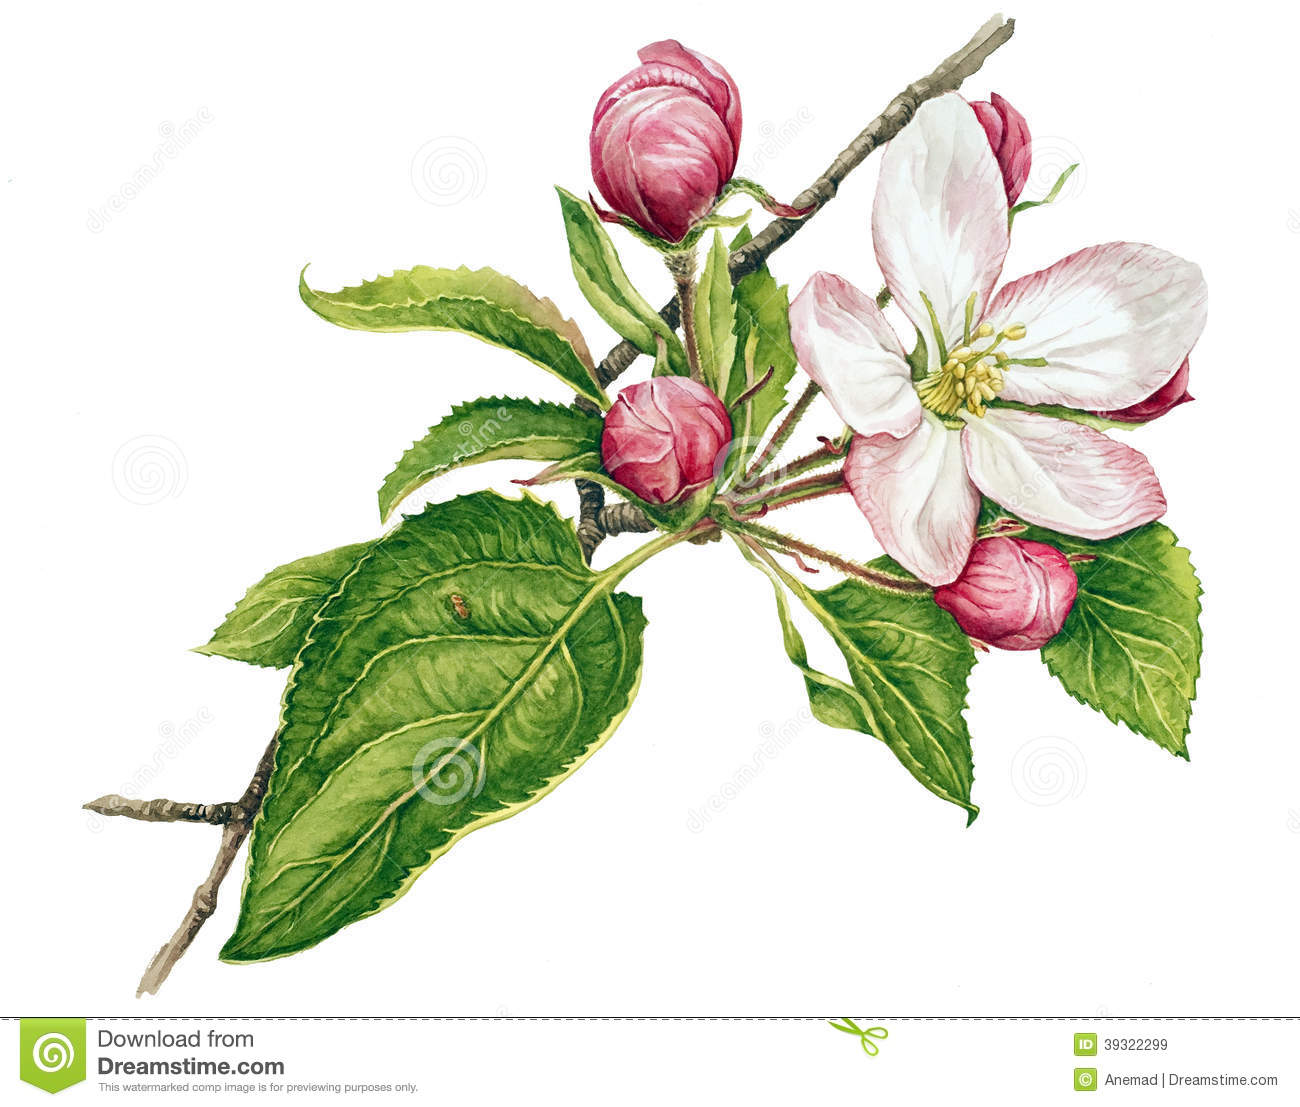 Cherry Tree clipart apple blossom Explore Pinterest Drawings drawings Botanical